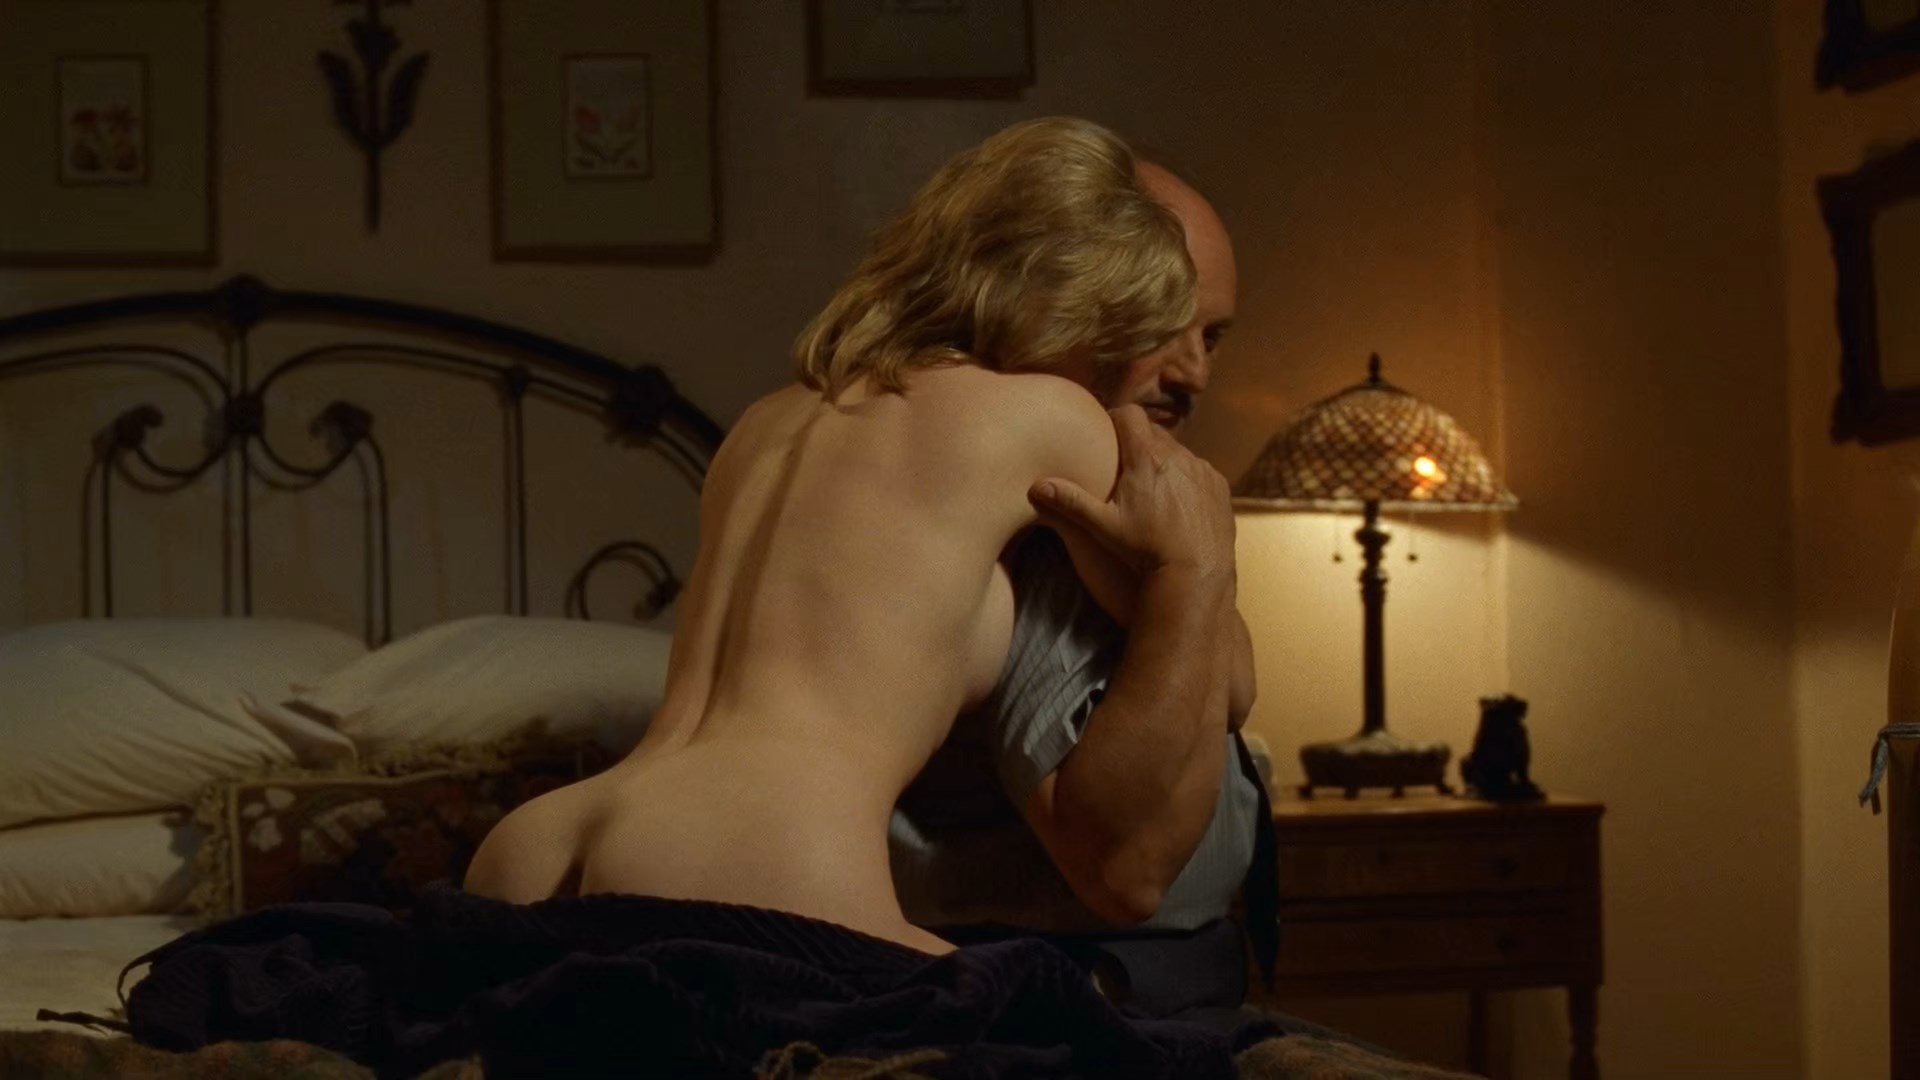 Nypd Blue Nude Scene Reenactment On Make A Gif